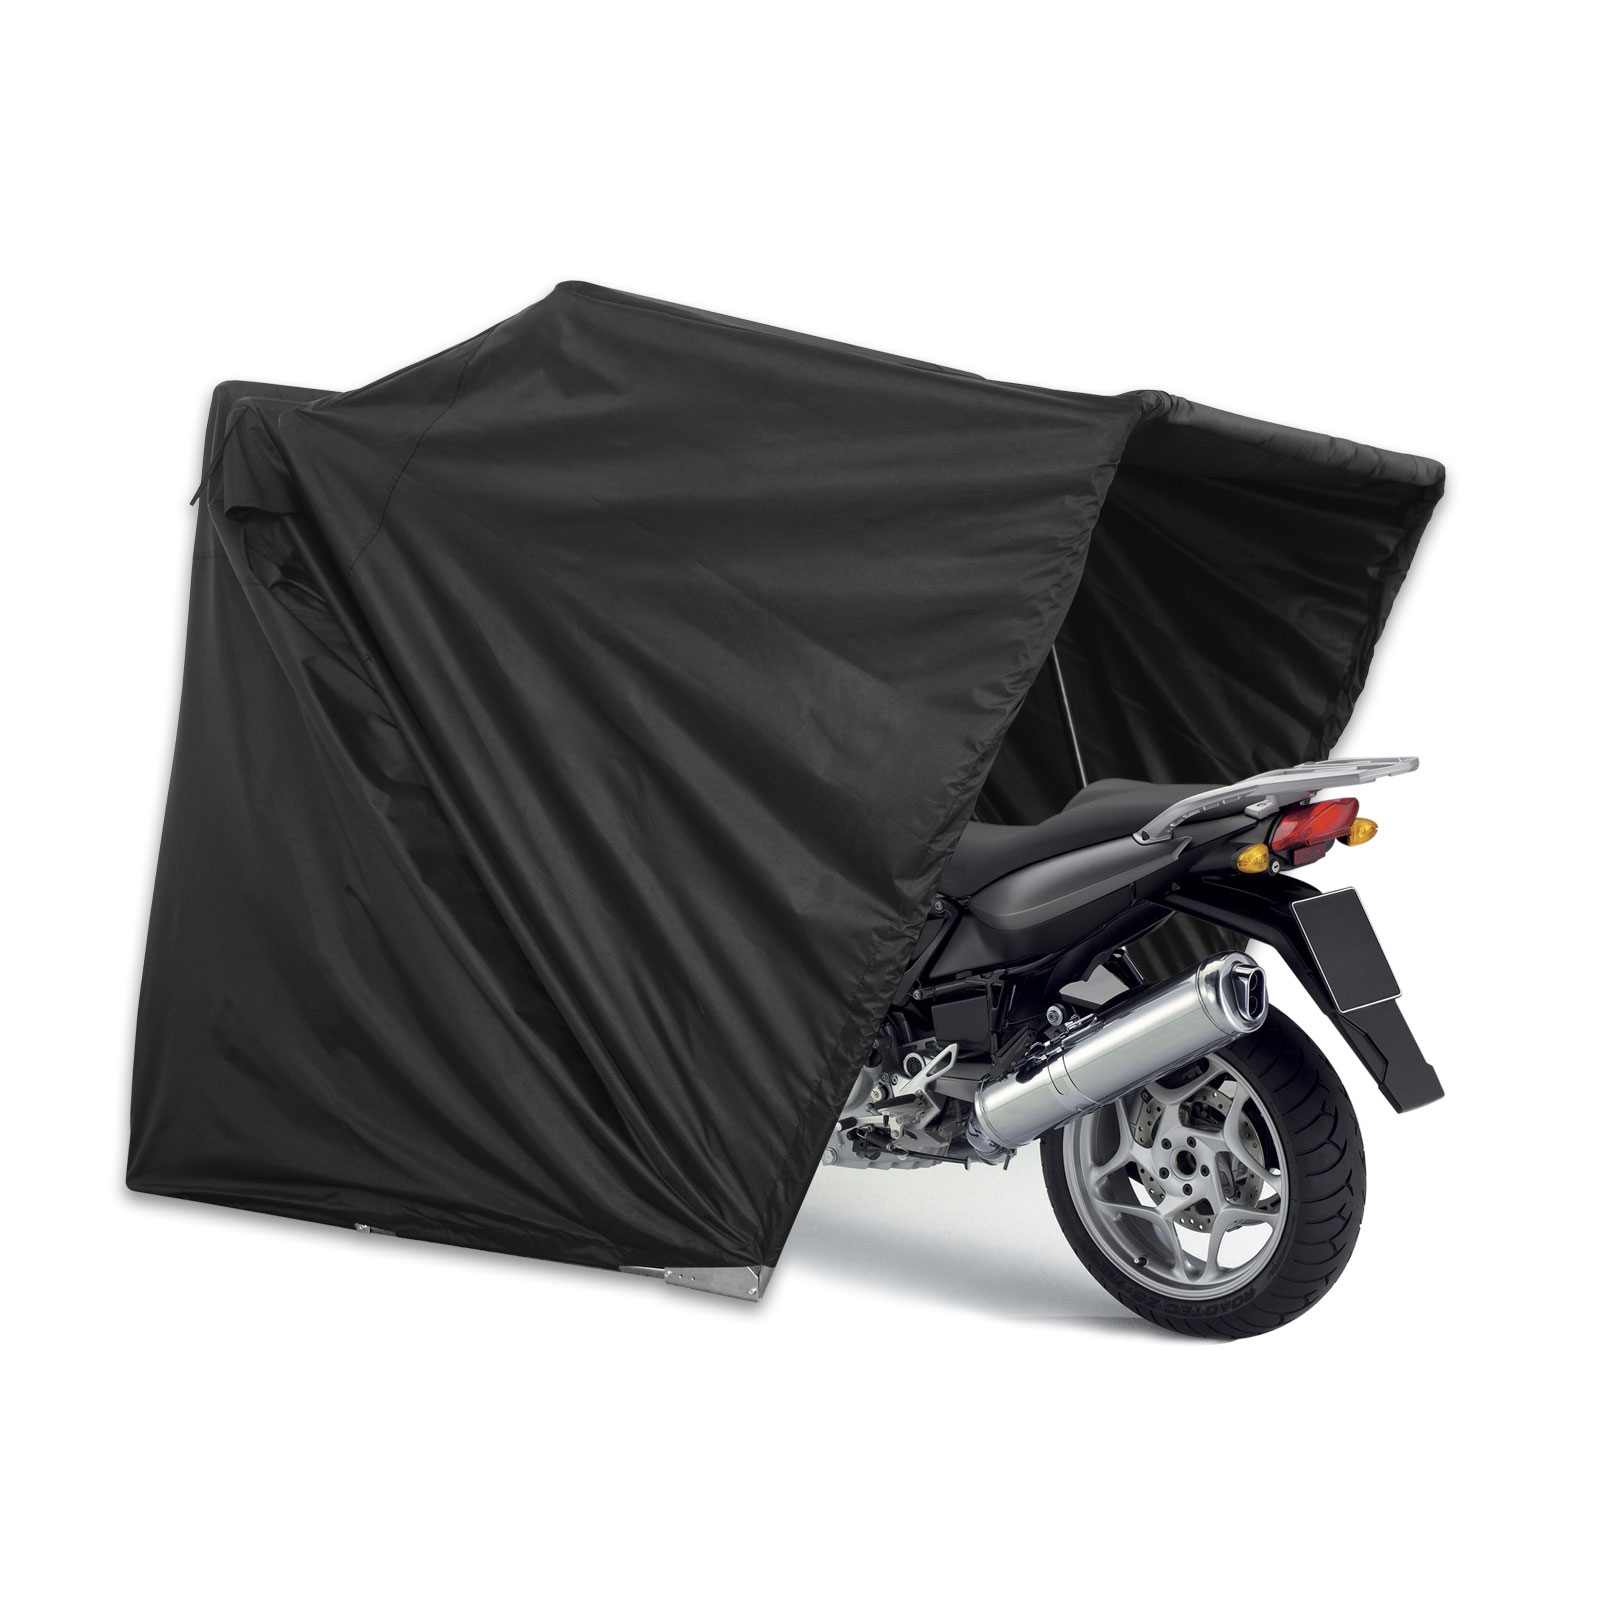 Motorcycle Sheds And Covers : Motorcycle storage tent camping motor bike folding cover